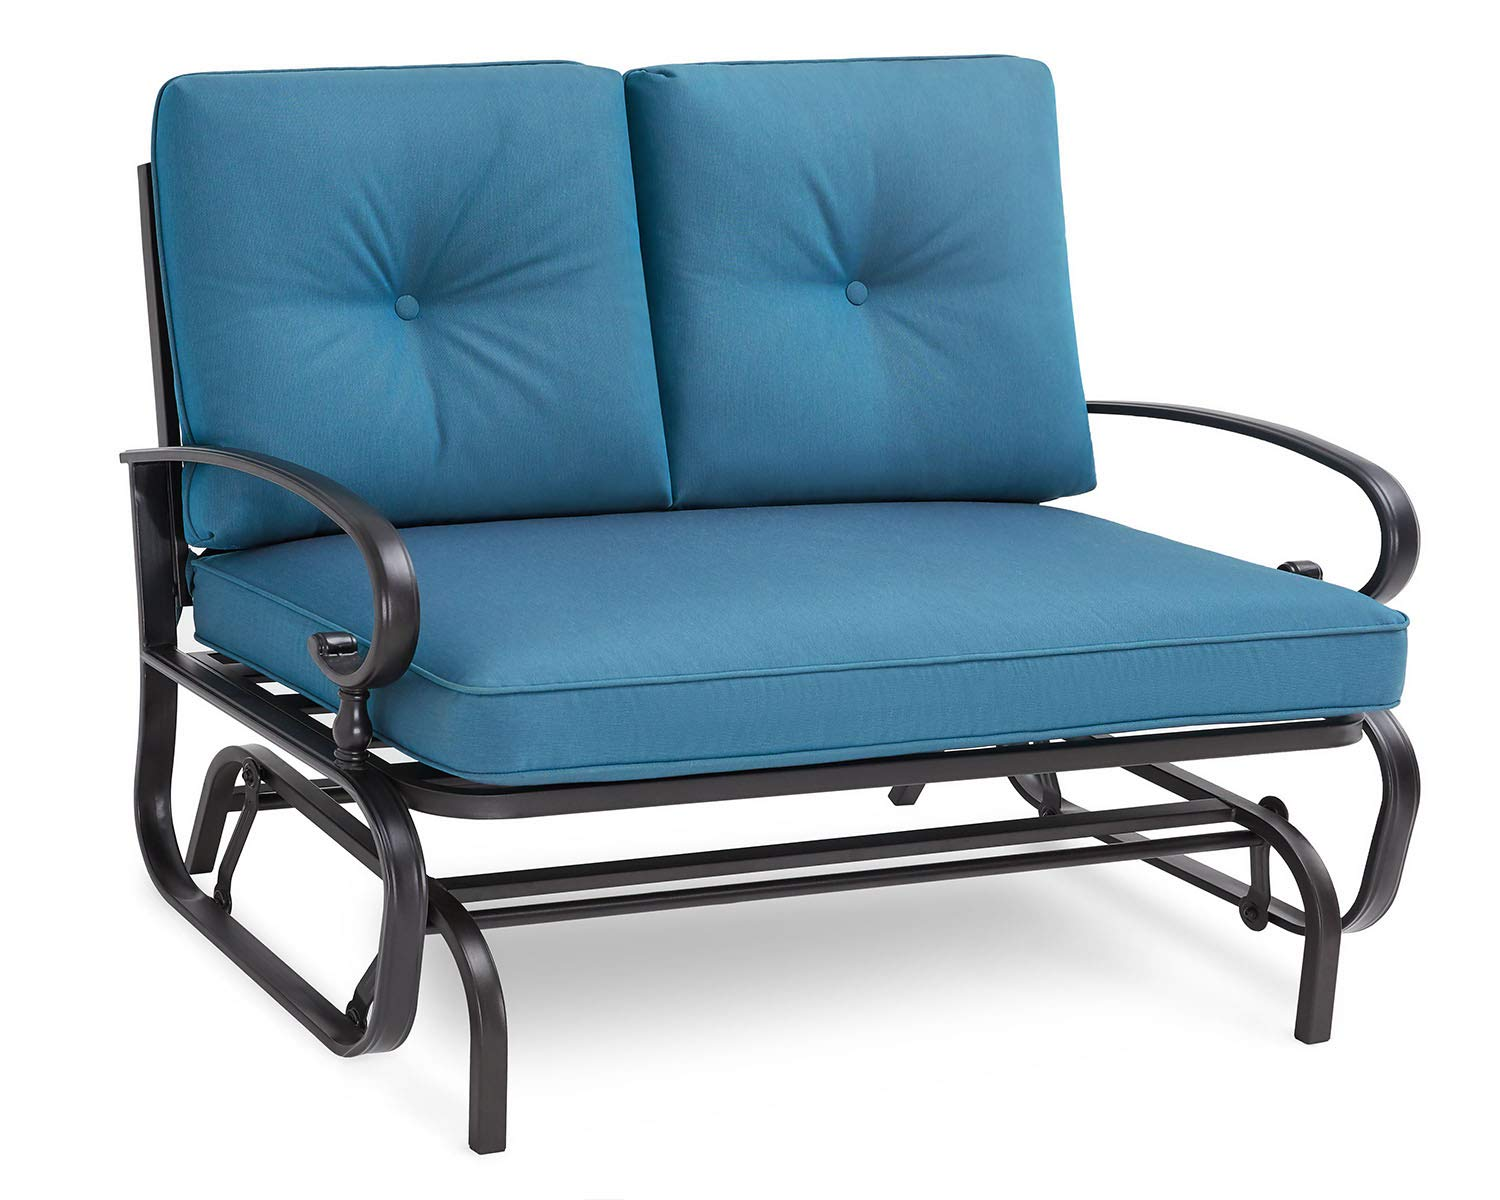 SOLAURA Patio Outdoor Furniture Loveseat Glider Wrought Iron Frame Peacock Blue Cushions Bench Sofa by SOLAURA